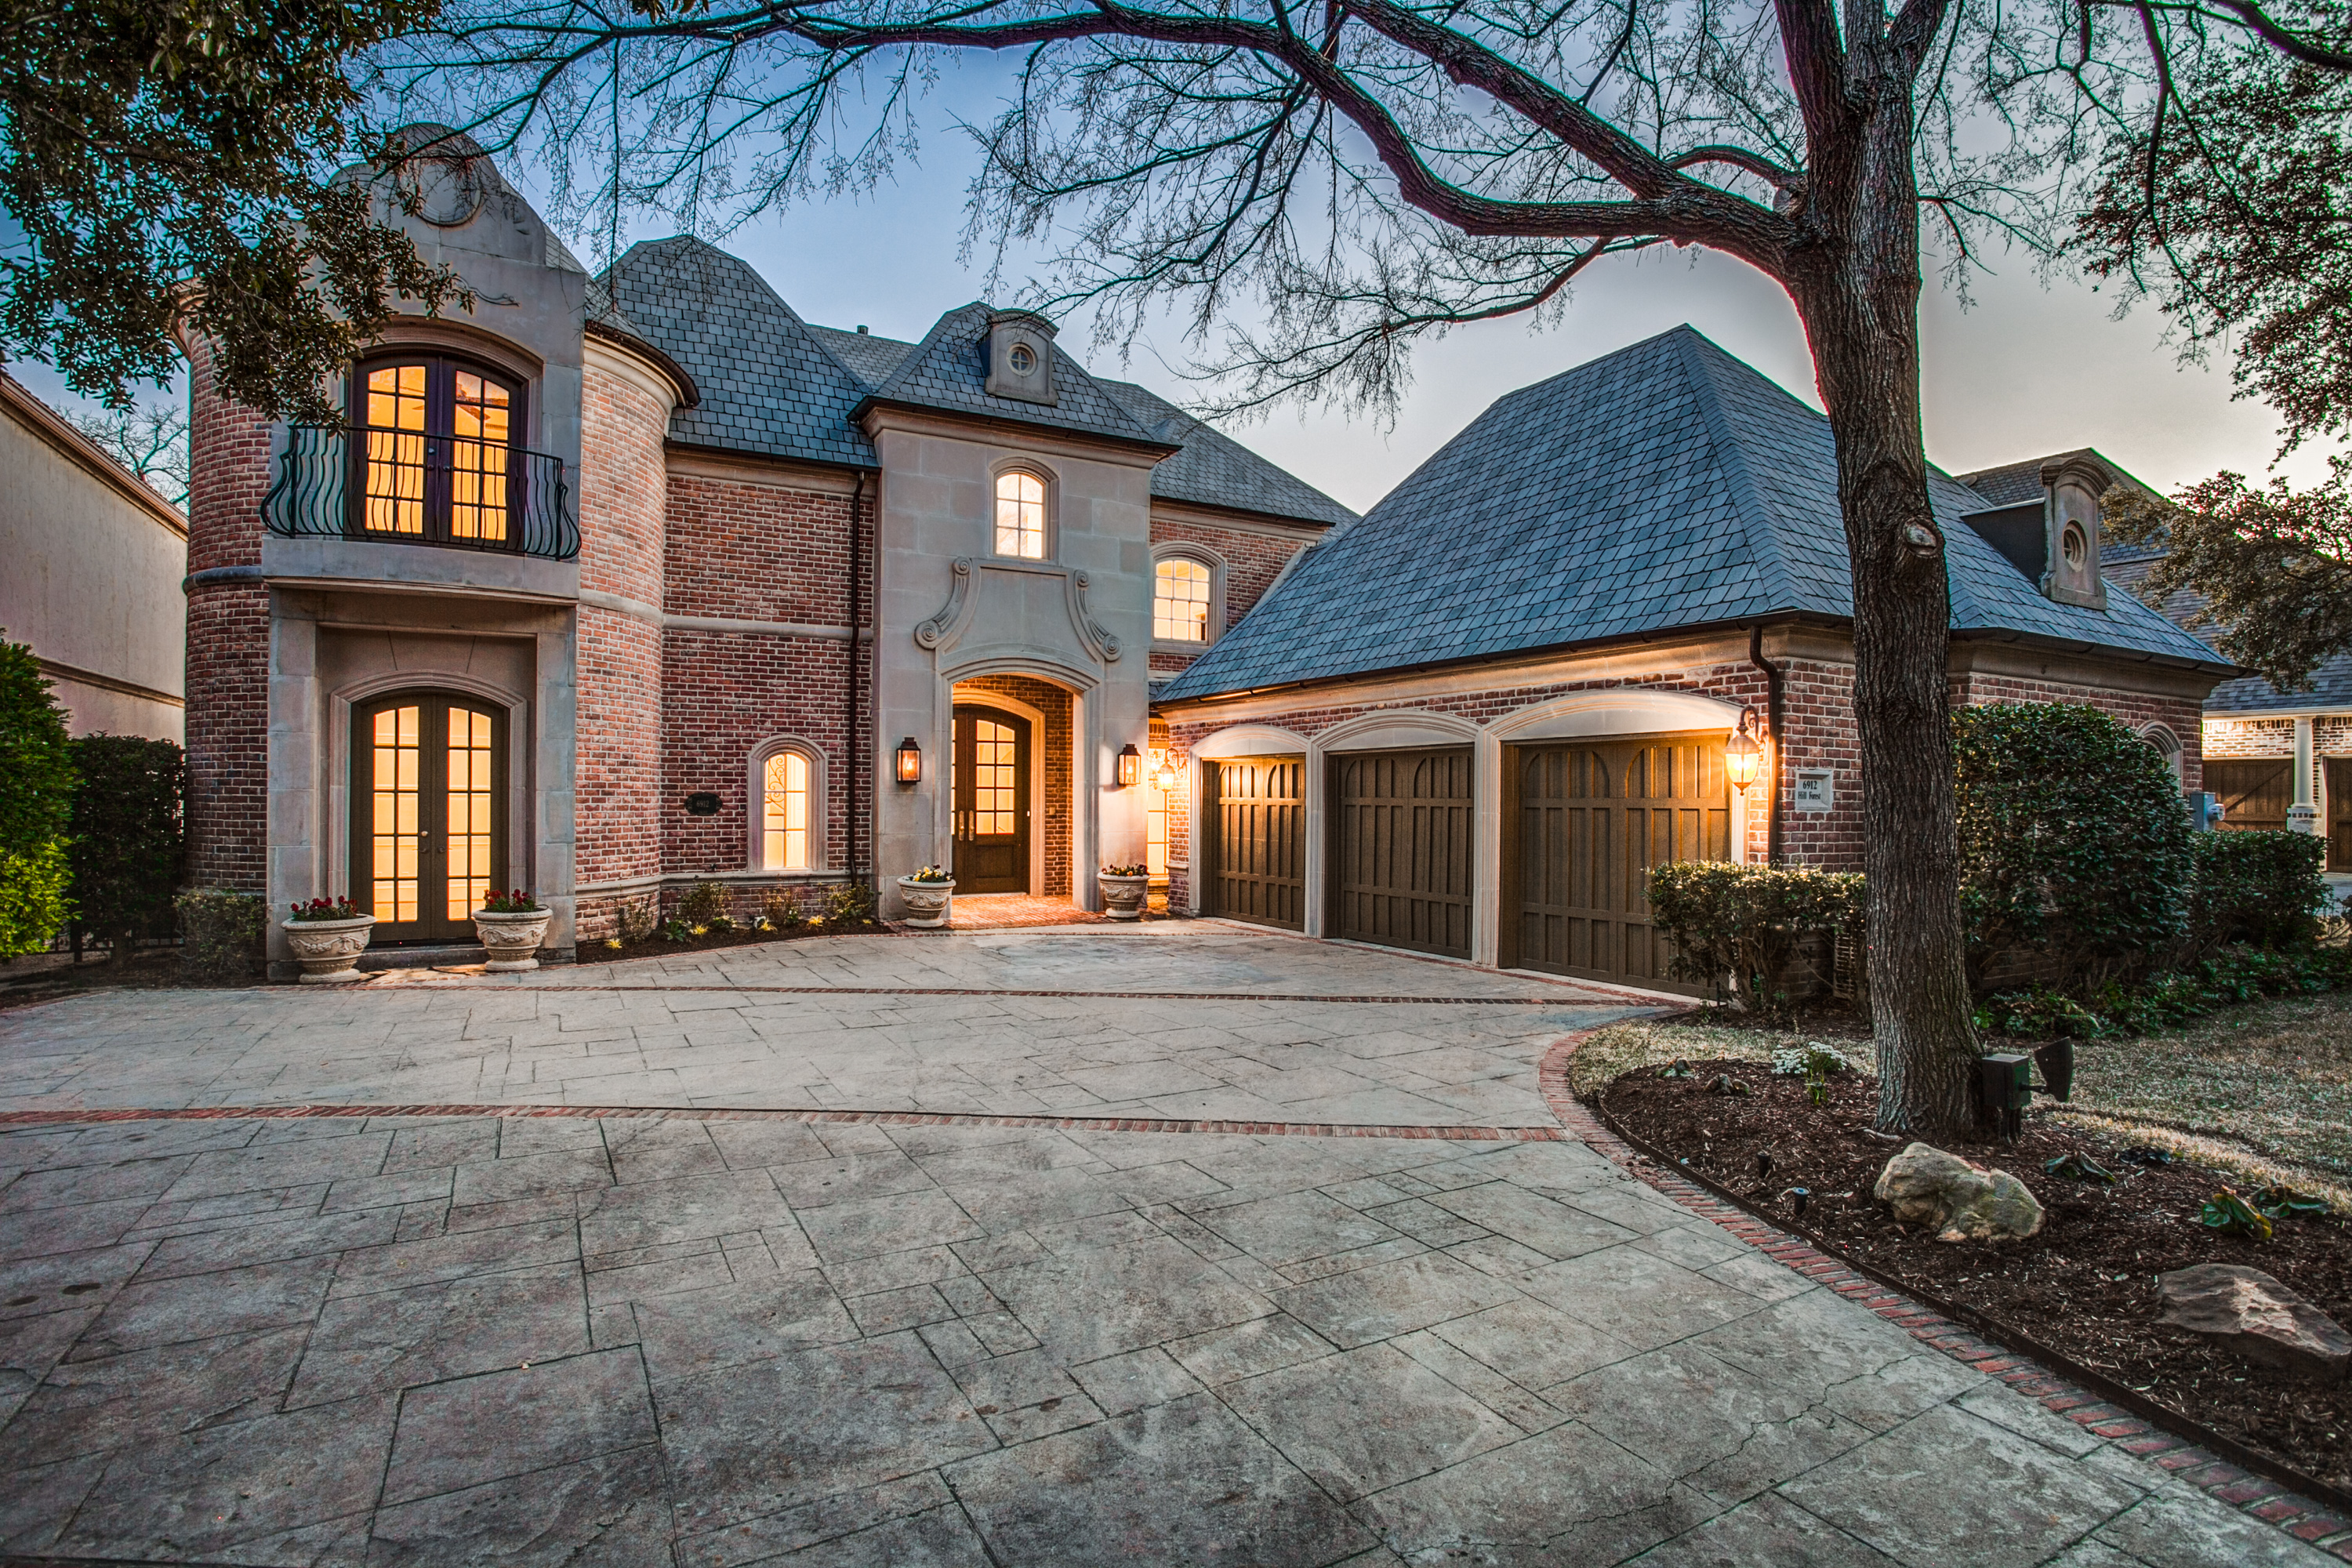 6912-hill-forest-dr-dallas-tx-High-Res-1